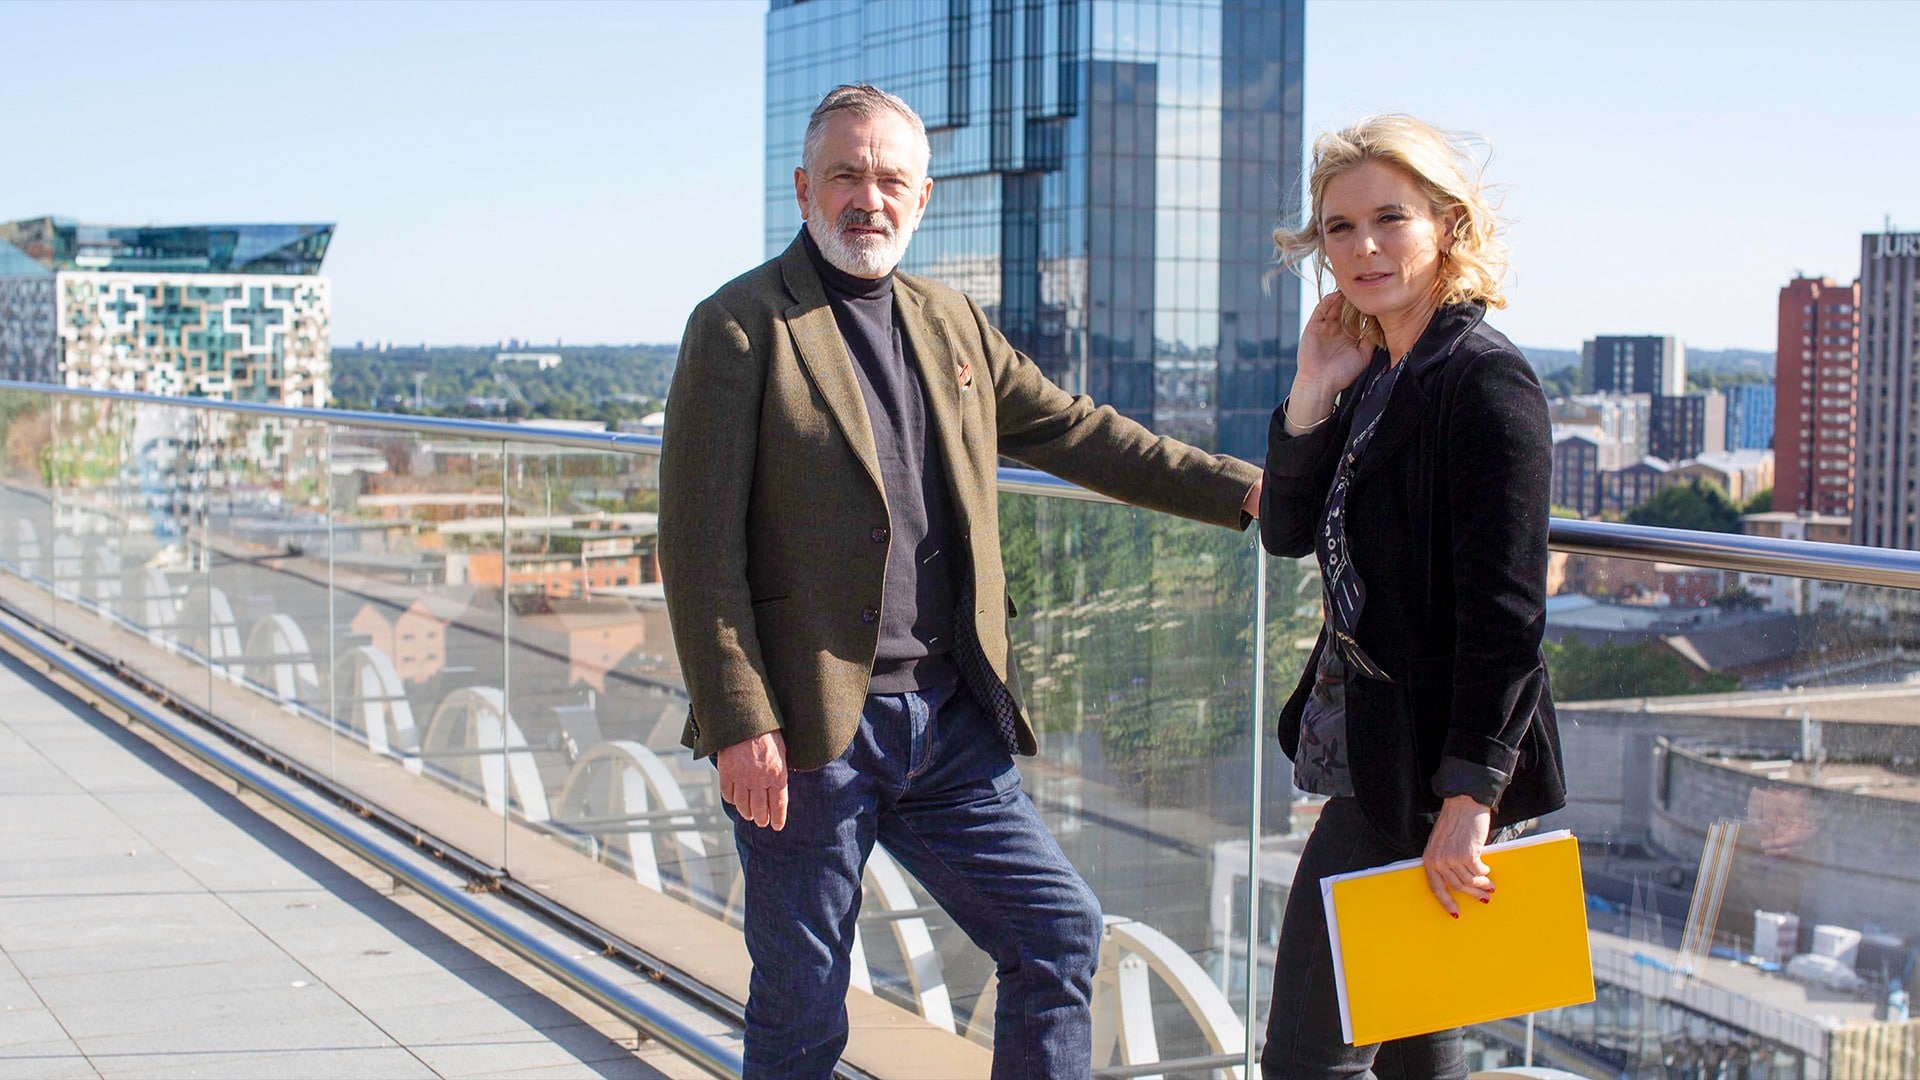 BritBox July Premieres: What's New on BritBox in July 2021? 2